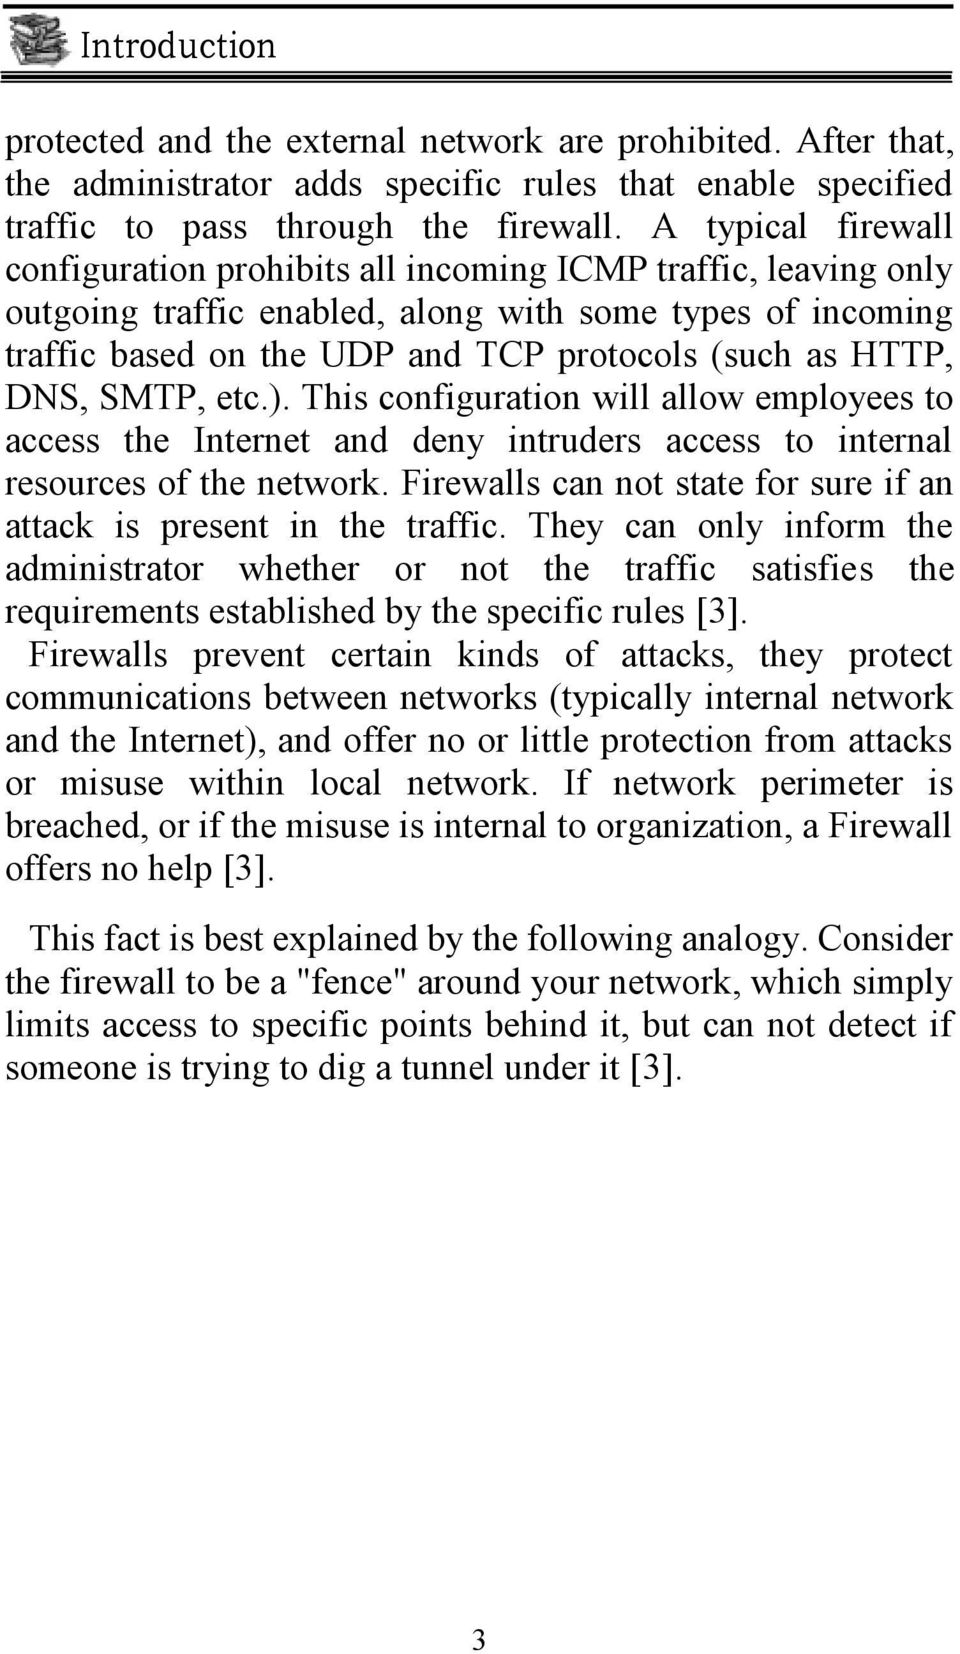 HTTP, DNS, SMTP, etc.). This configuration will allow employees to access the Internet and deny intruders access to internal resources of the network.